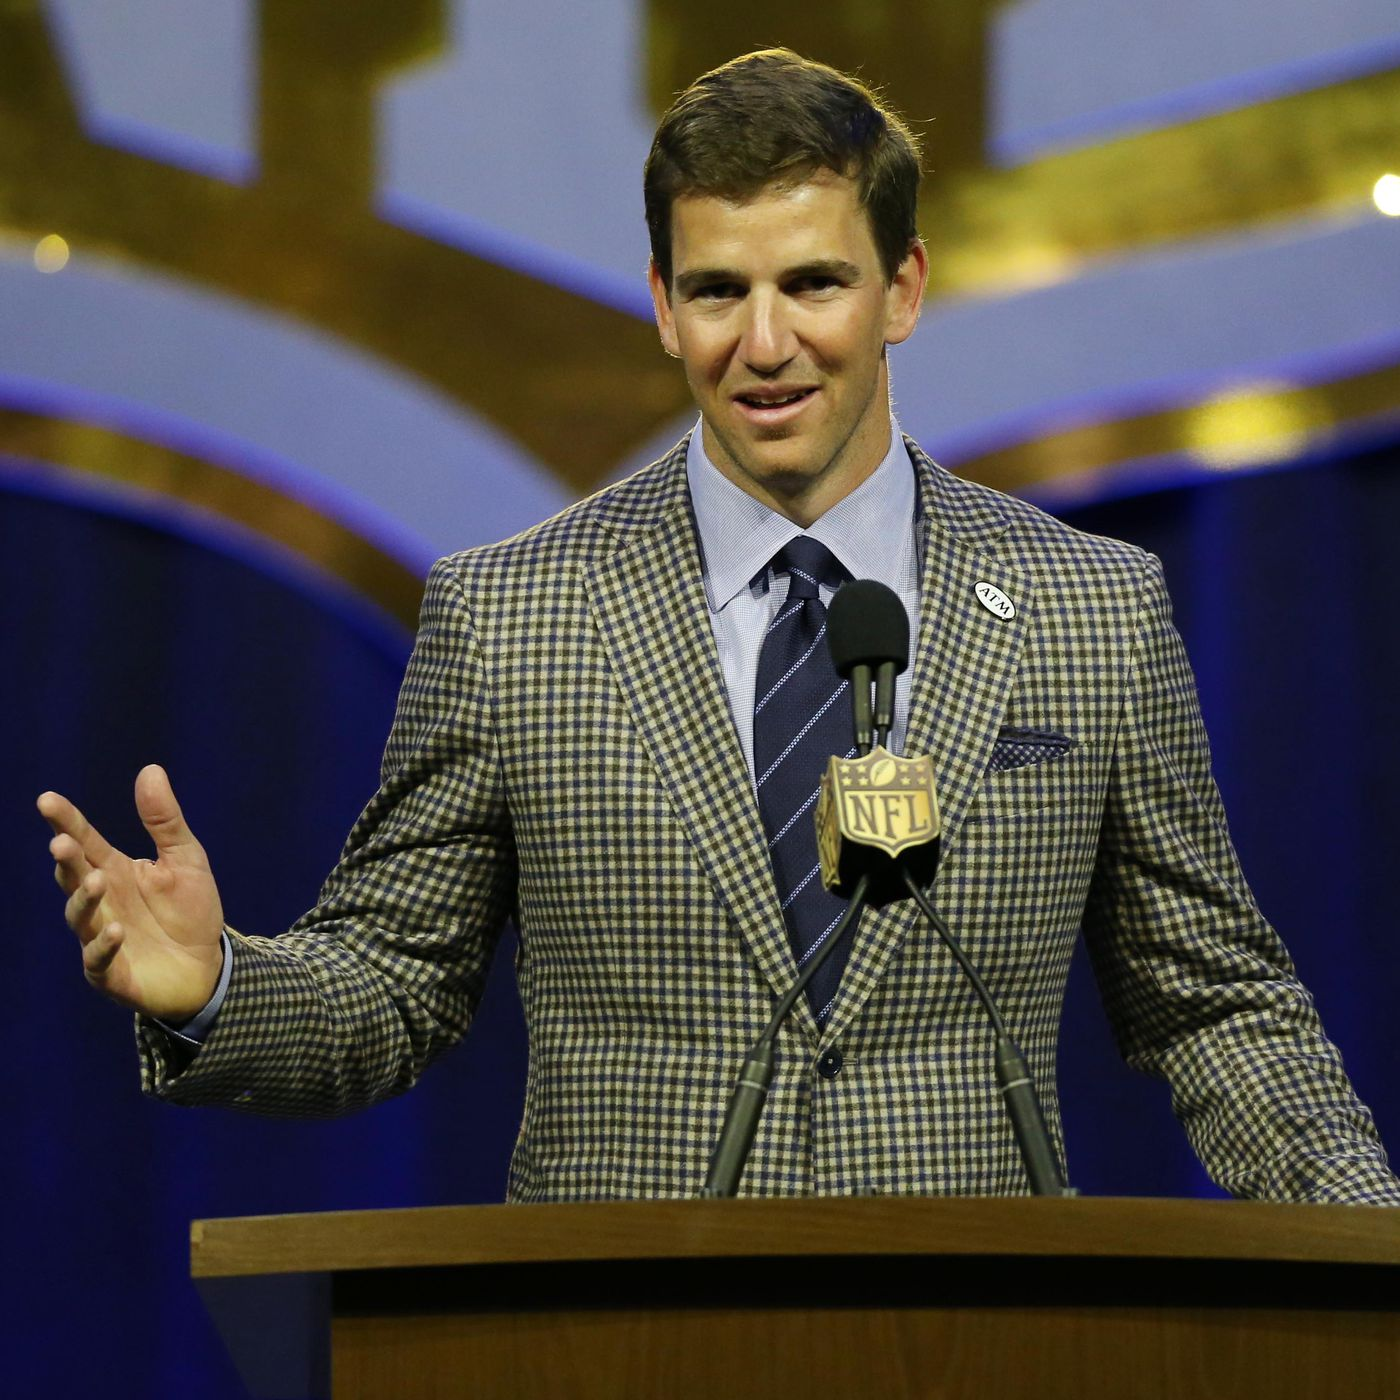 Eli Manning has a new teammate named Eli so he s open to going by